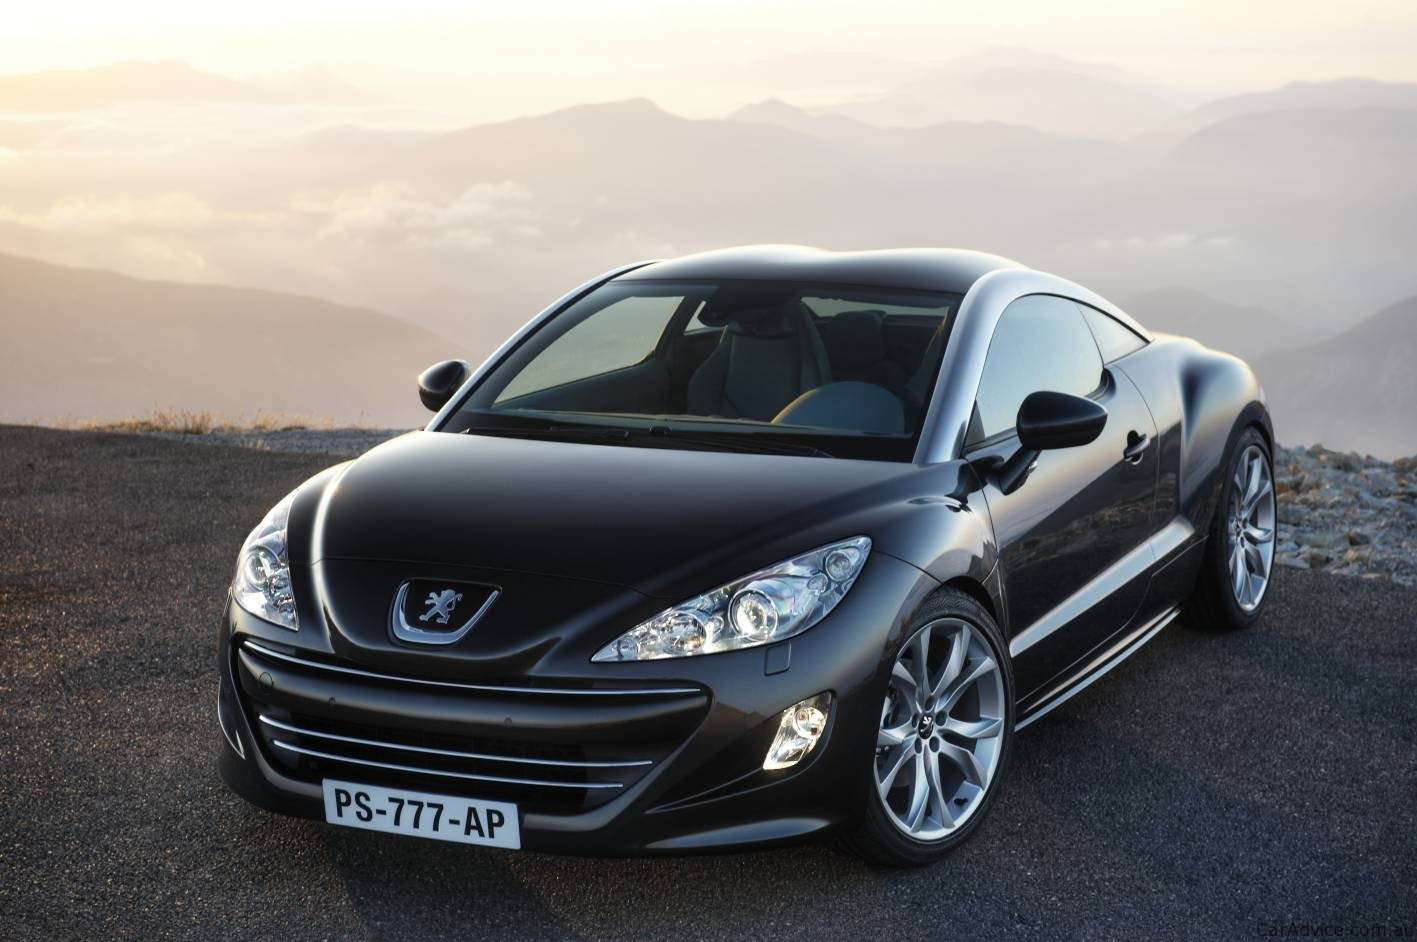 2010 peugeot rcz sports coupe released in australia photos 1 of 24. Black Bedroom Furniture Sets. Home Design Ideas